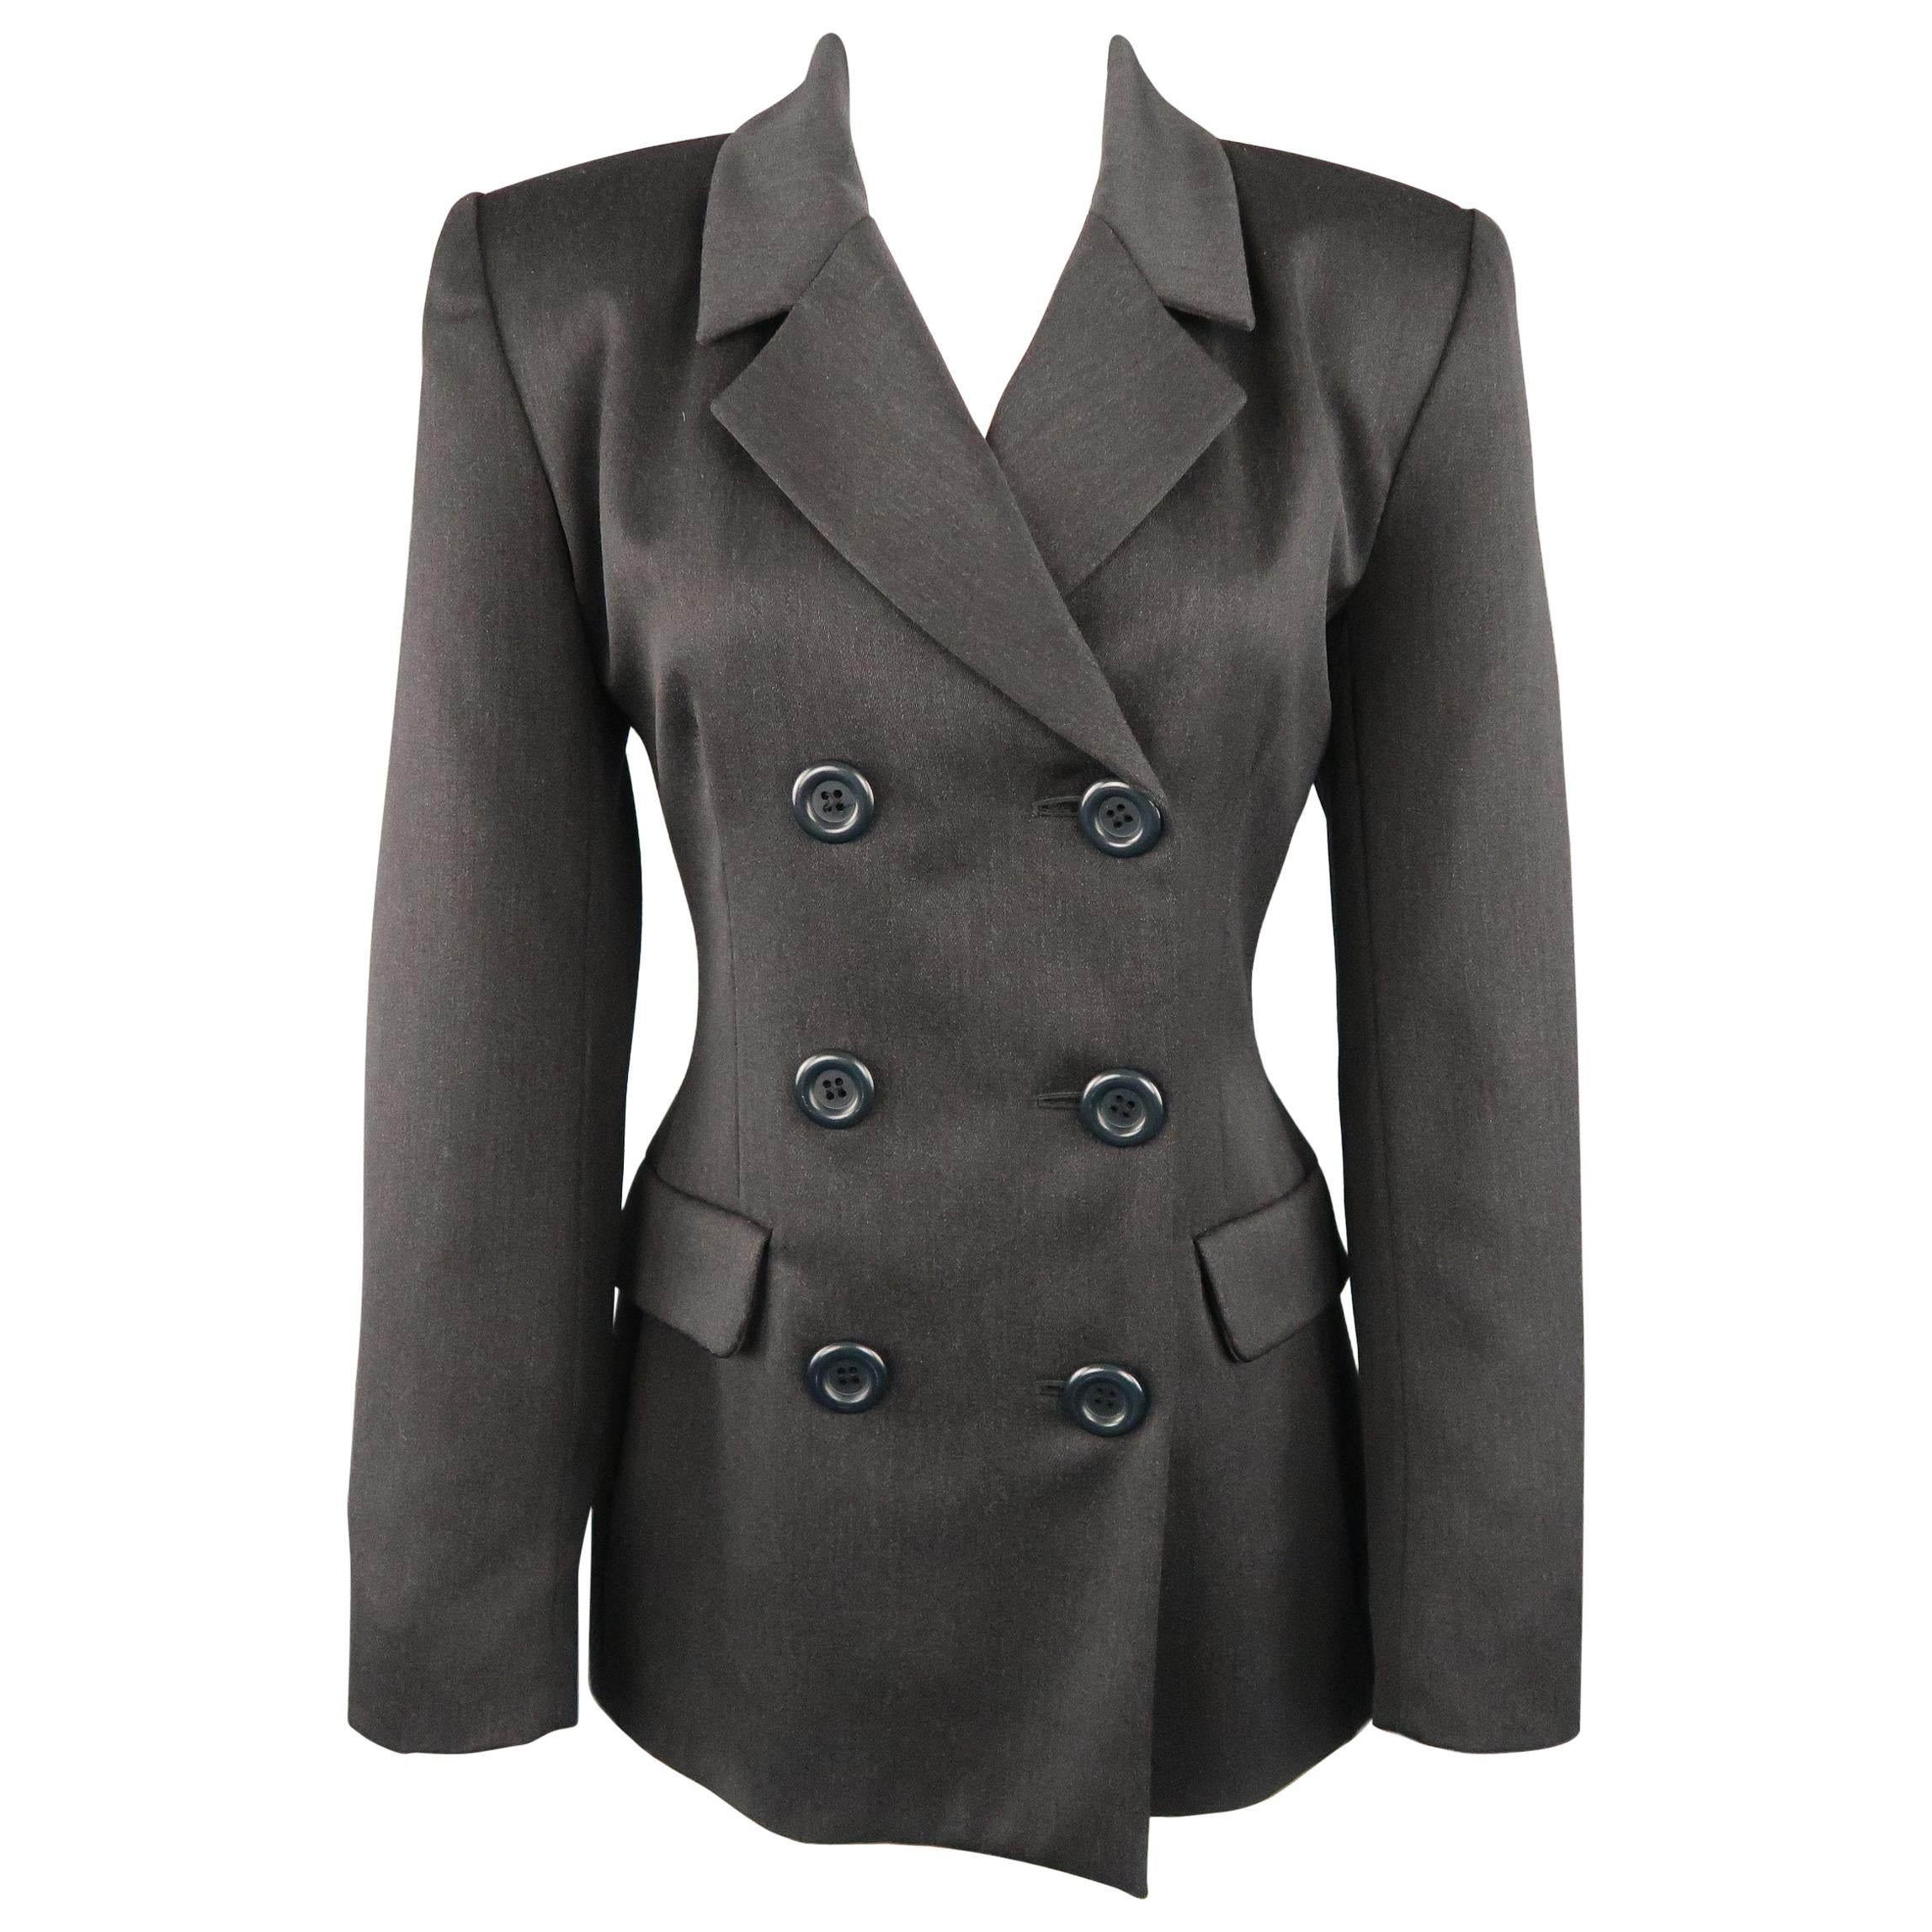 YVES SAINT LAURENT Encore Size 6 Charcoal Double Breasted Jacket